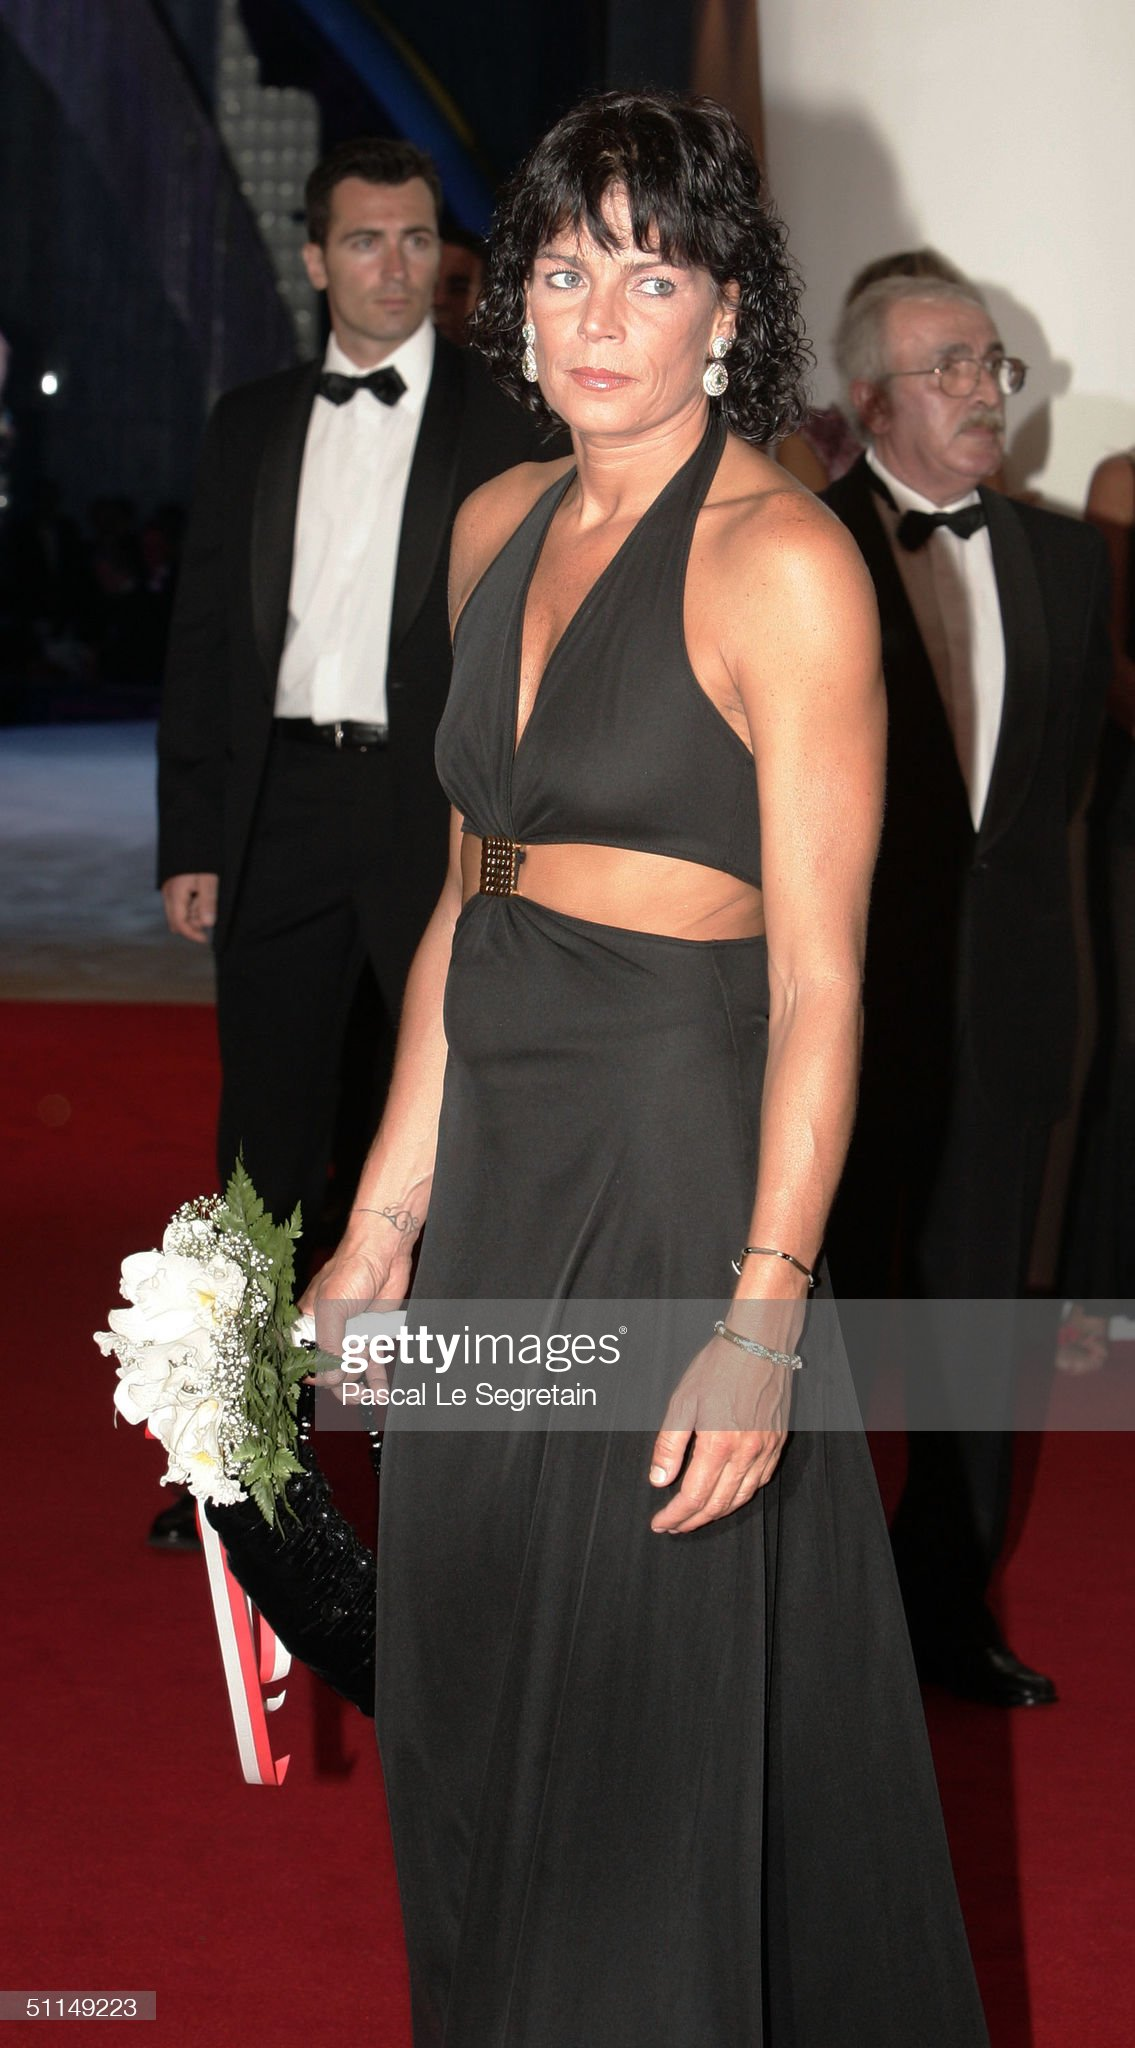 Monte Carlo Red Cross Ball 2004 - Arrivals : News Photo